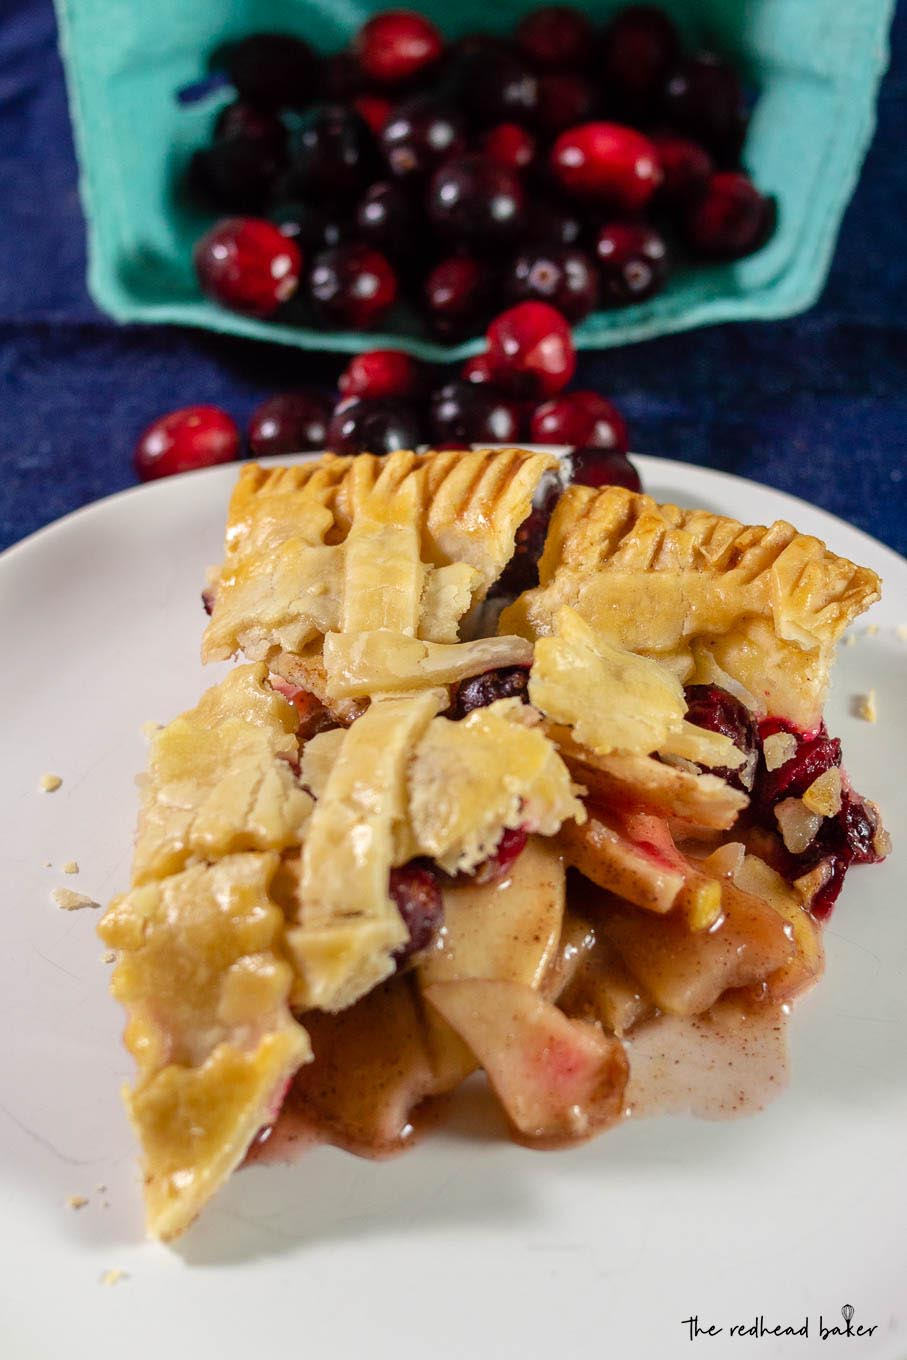 A slice of cranberry apple pie in front of a container of cranberries